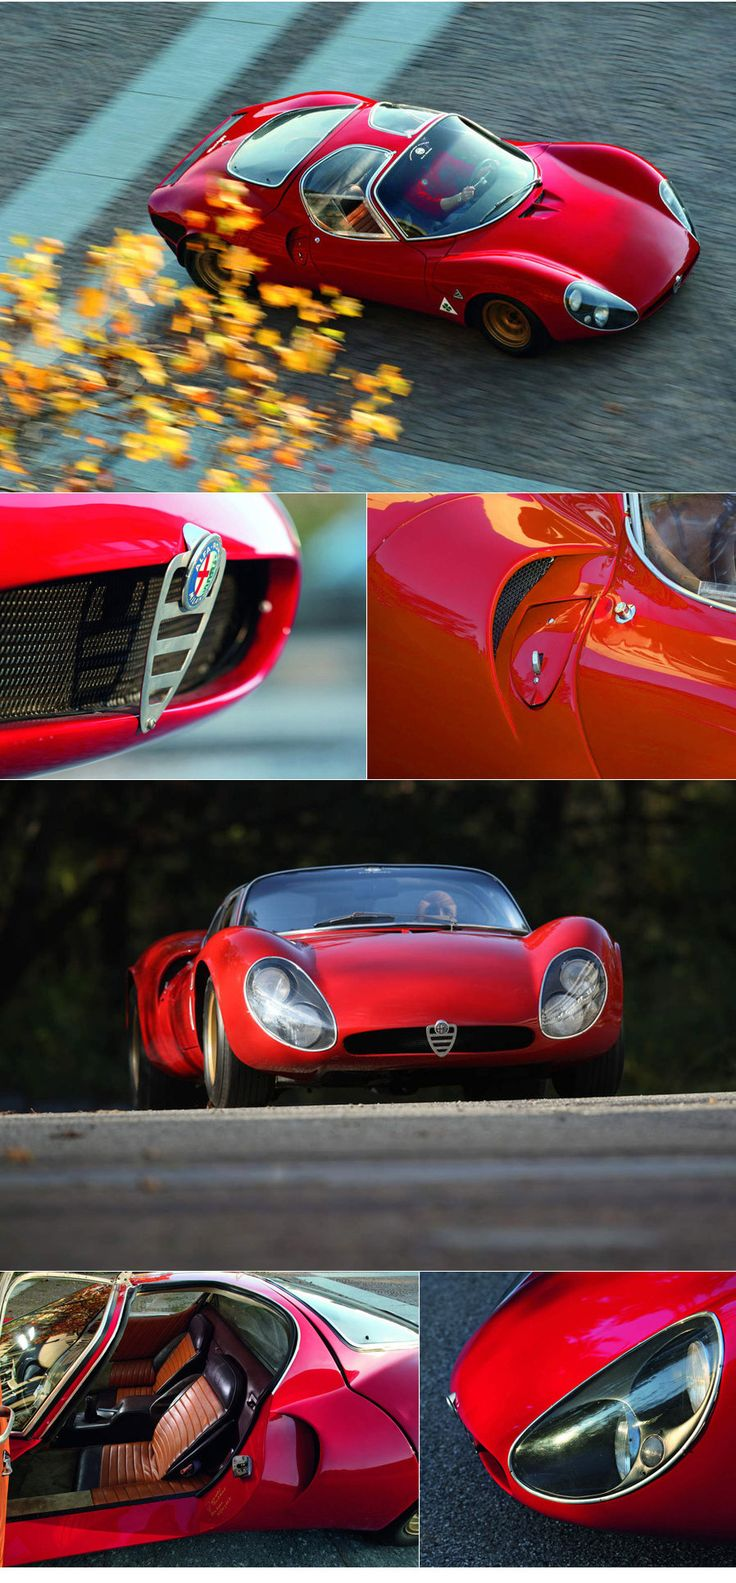 The exciting brand new street legal cruser sport elec car amp golf cart - 1967 Alfa Romeo T33 2 Stradale Megadeluxe For The Love Of Speed